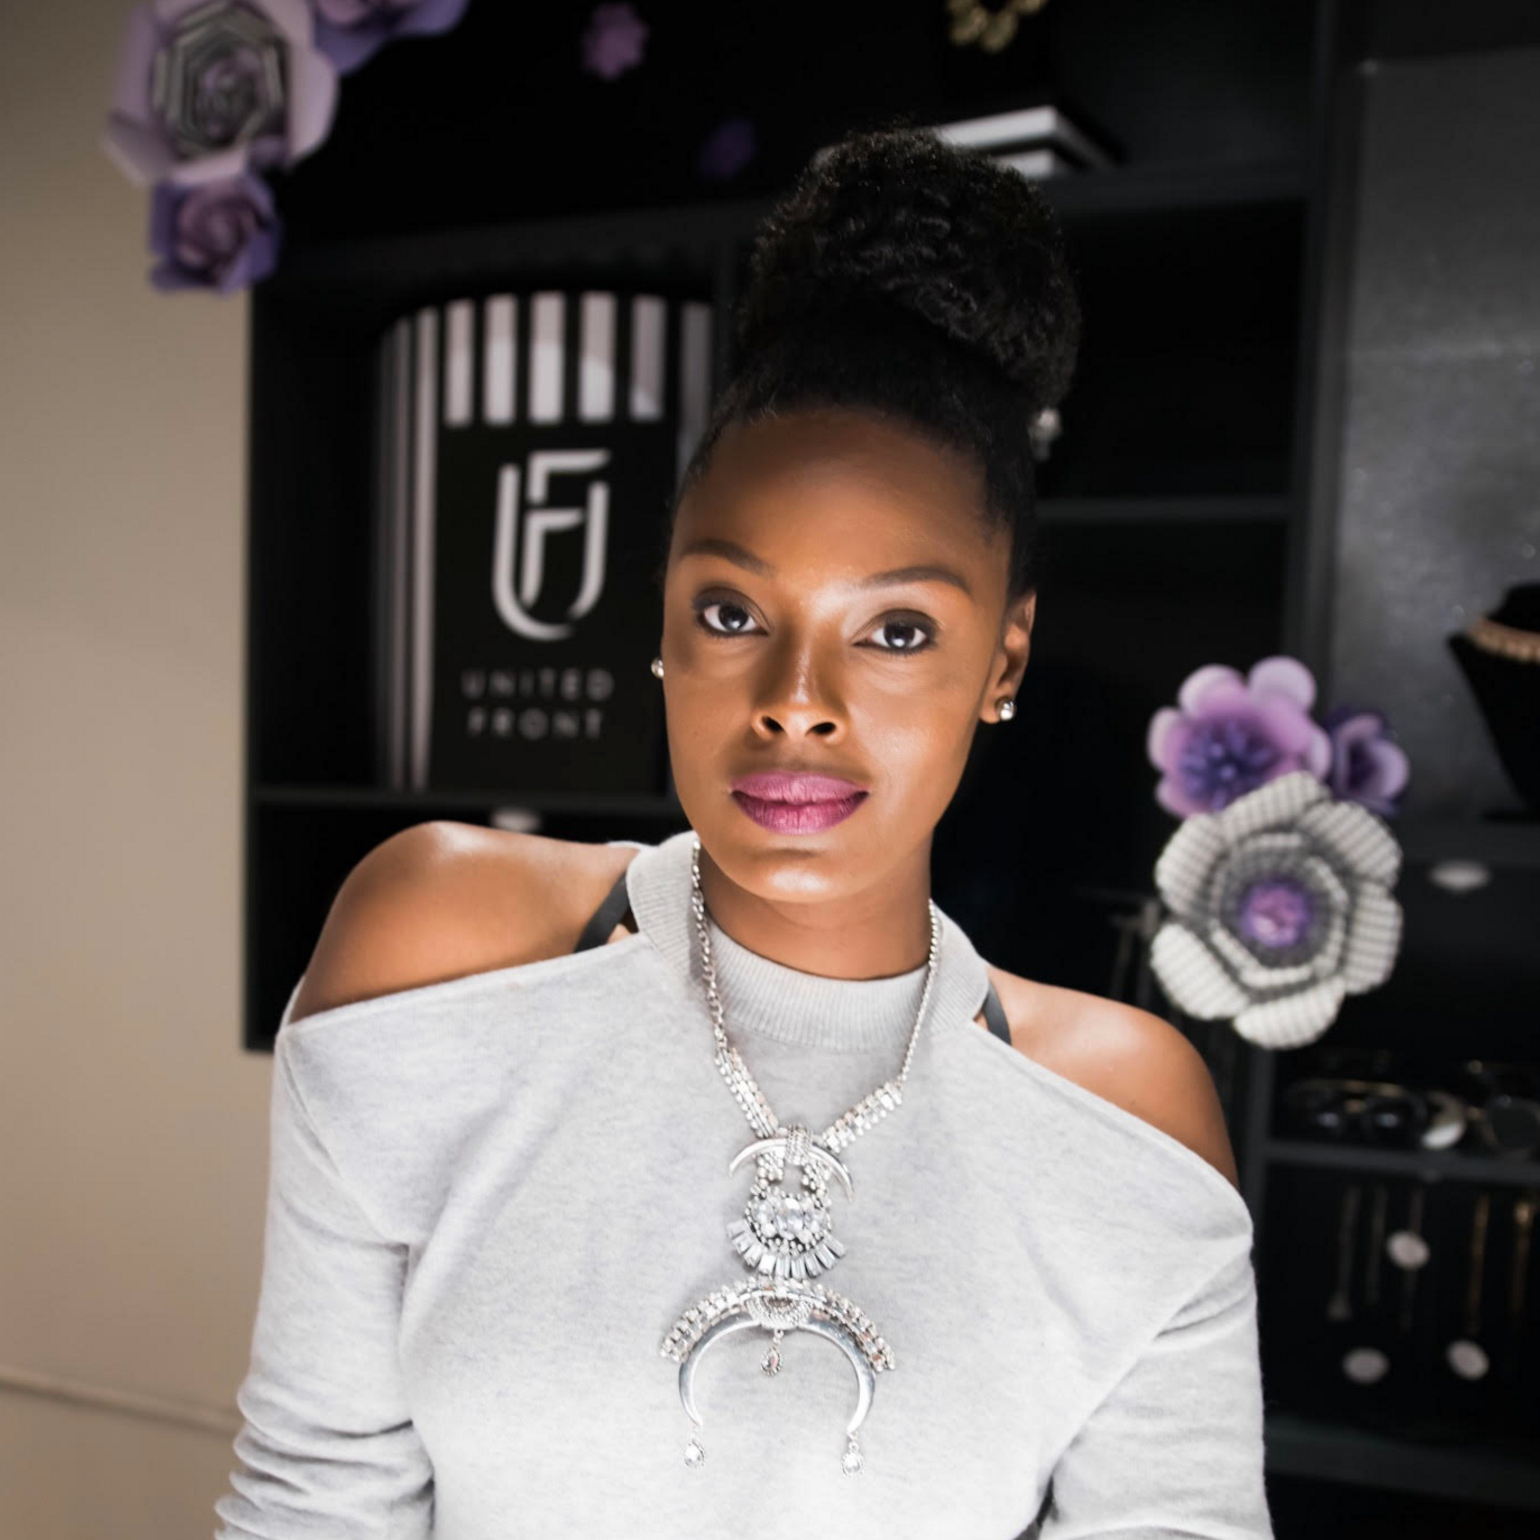 Jordette Singleton '05 runs her own boutique, UnitedFront, as part of the North End Collective in Midtown.